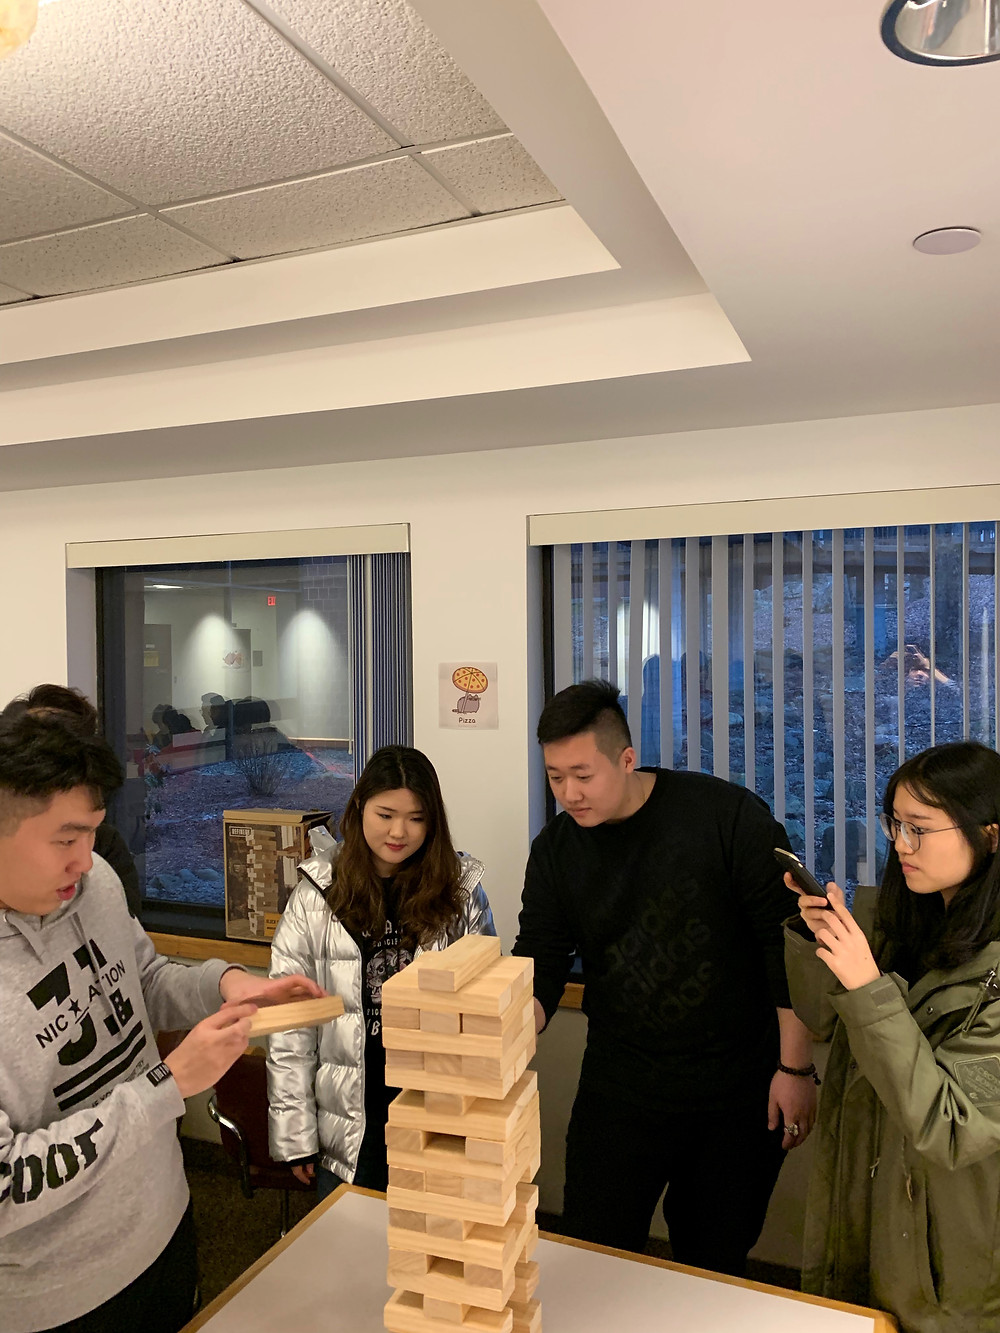 Shihan Chen, Yahui Chen, Ziyan Sun, and Fang Jianzhou try their hand at giant jenga